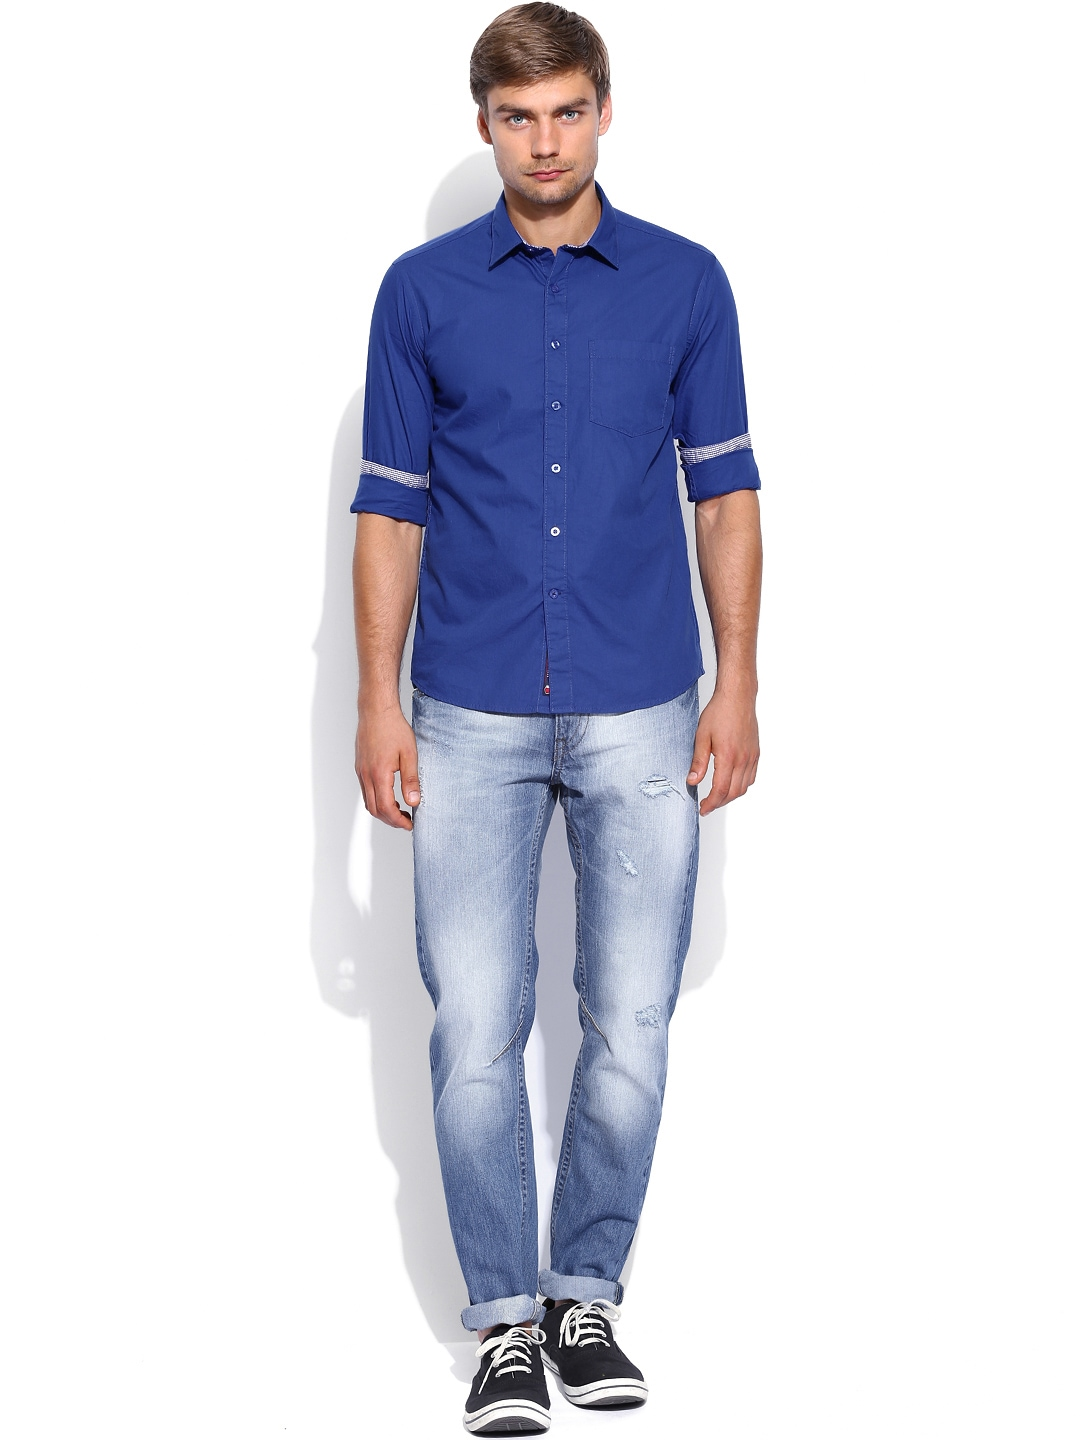 Myntra vivaldi men blue tailored fit casual shirt 687647 for Best online tailored shirts